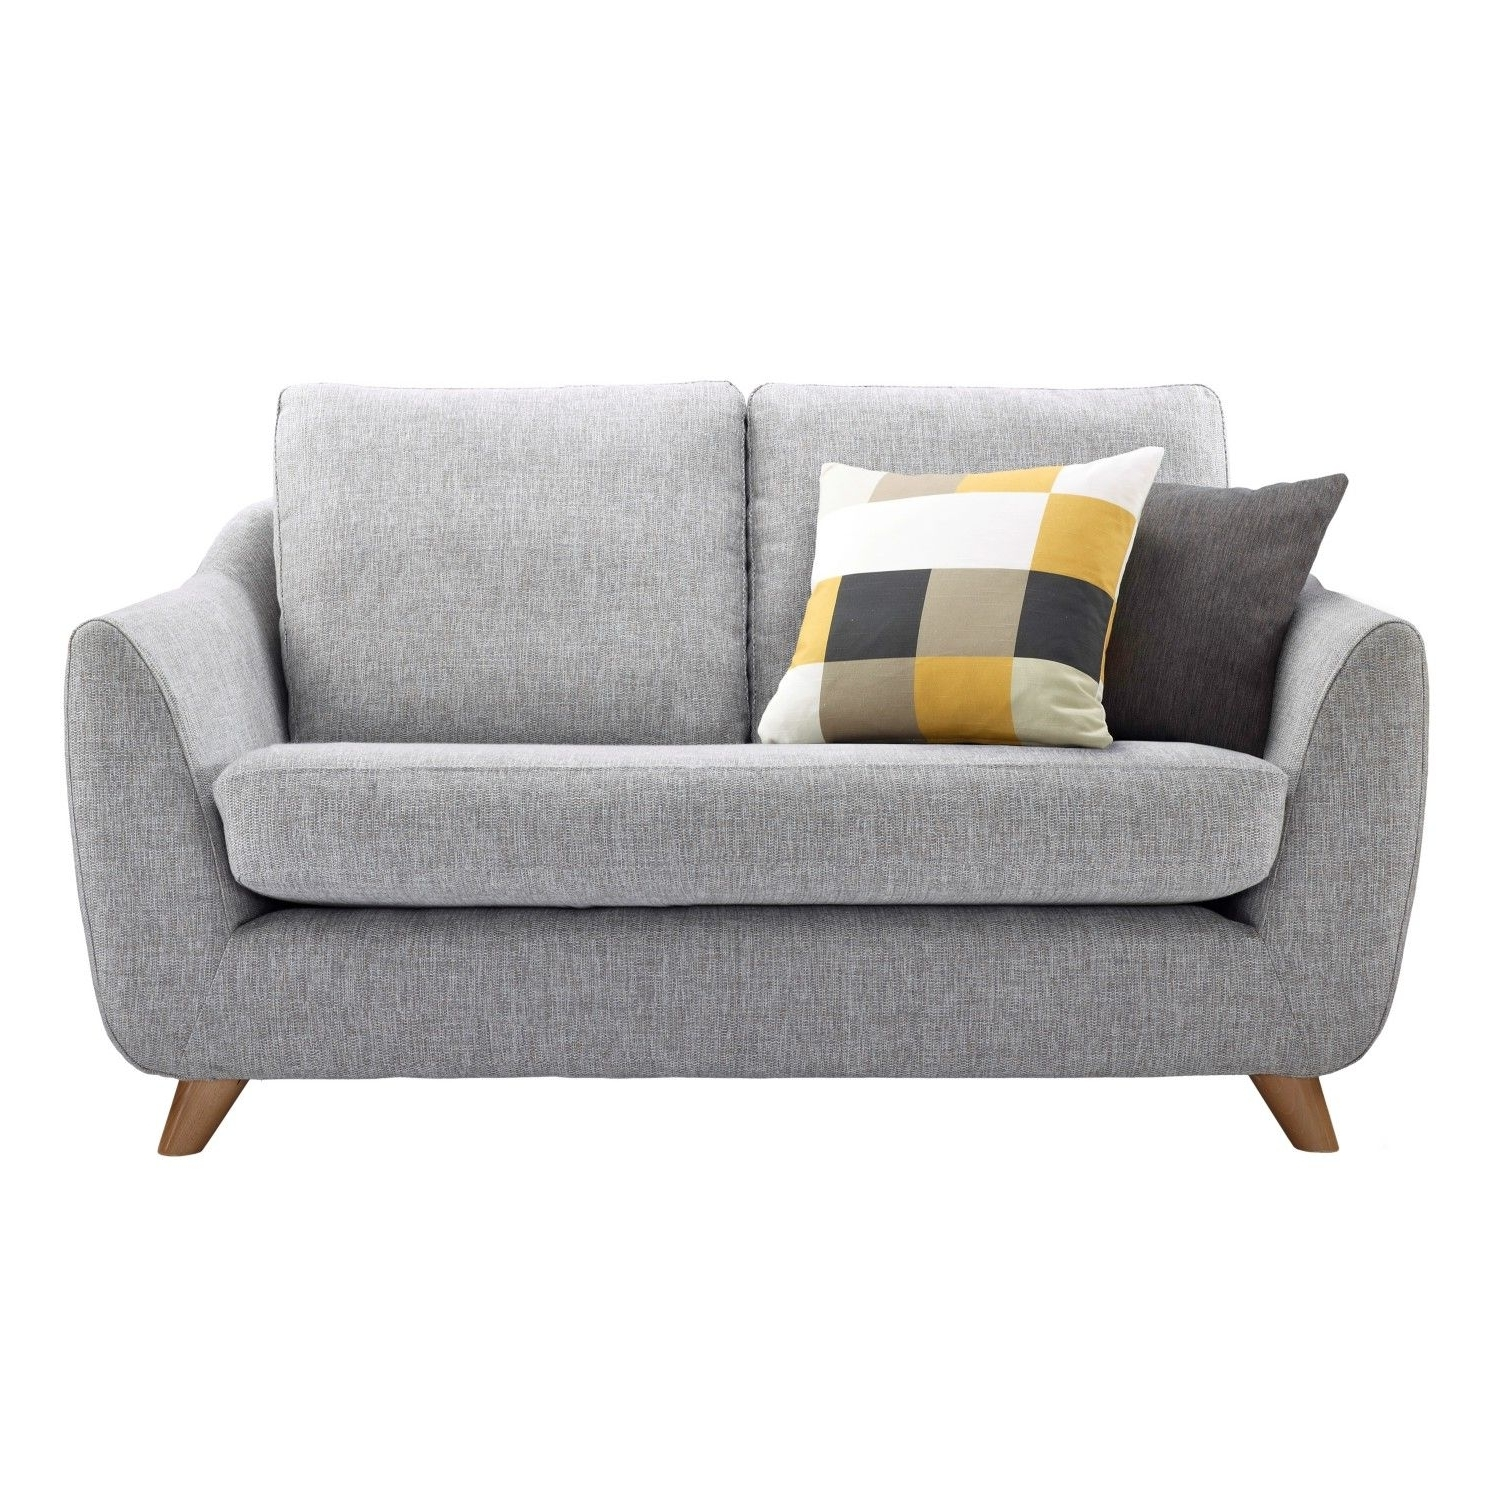 Cheap Small Sofa Decoration Within Tiny Sofas (View 3 of 20)